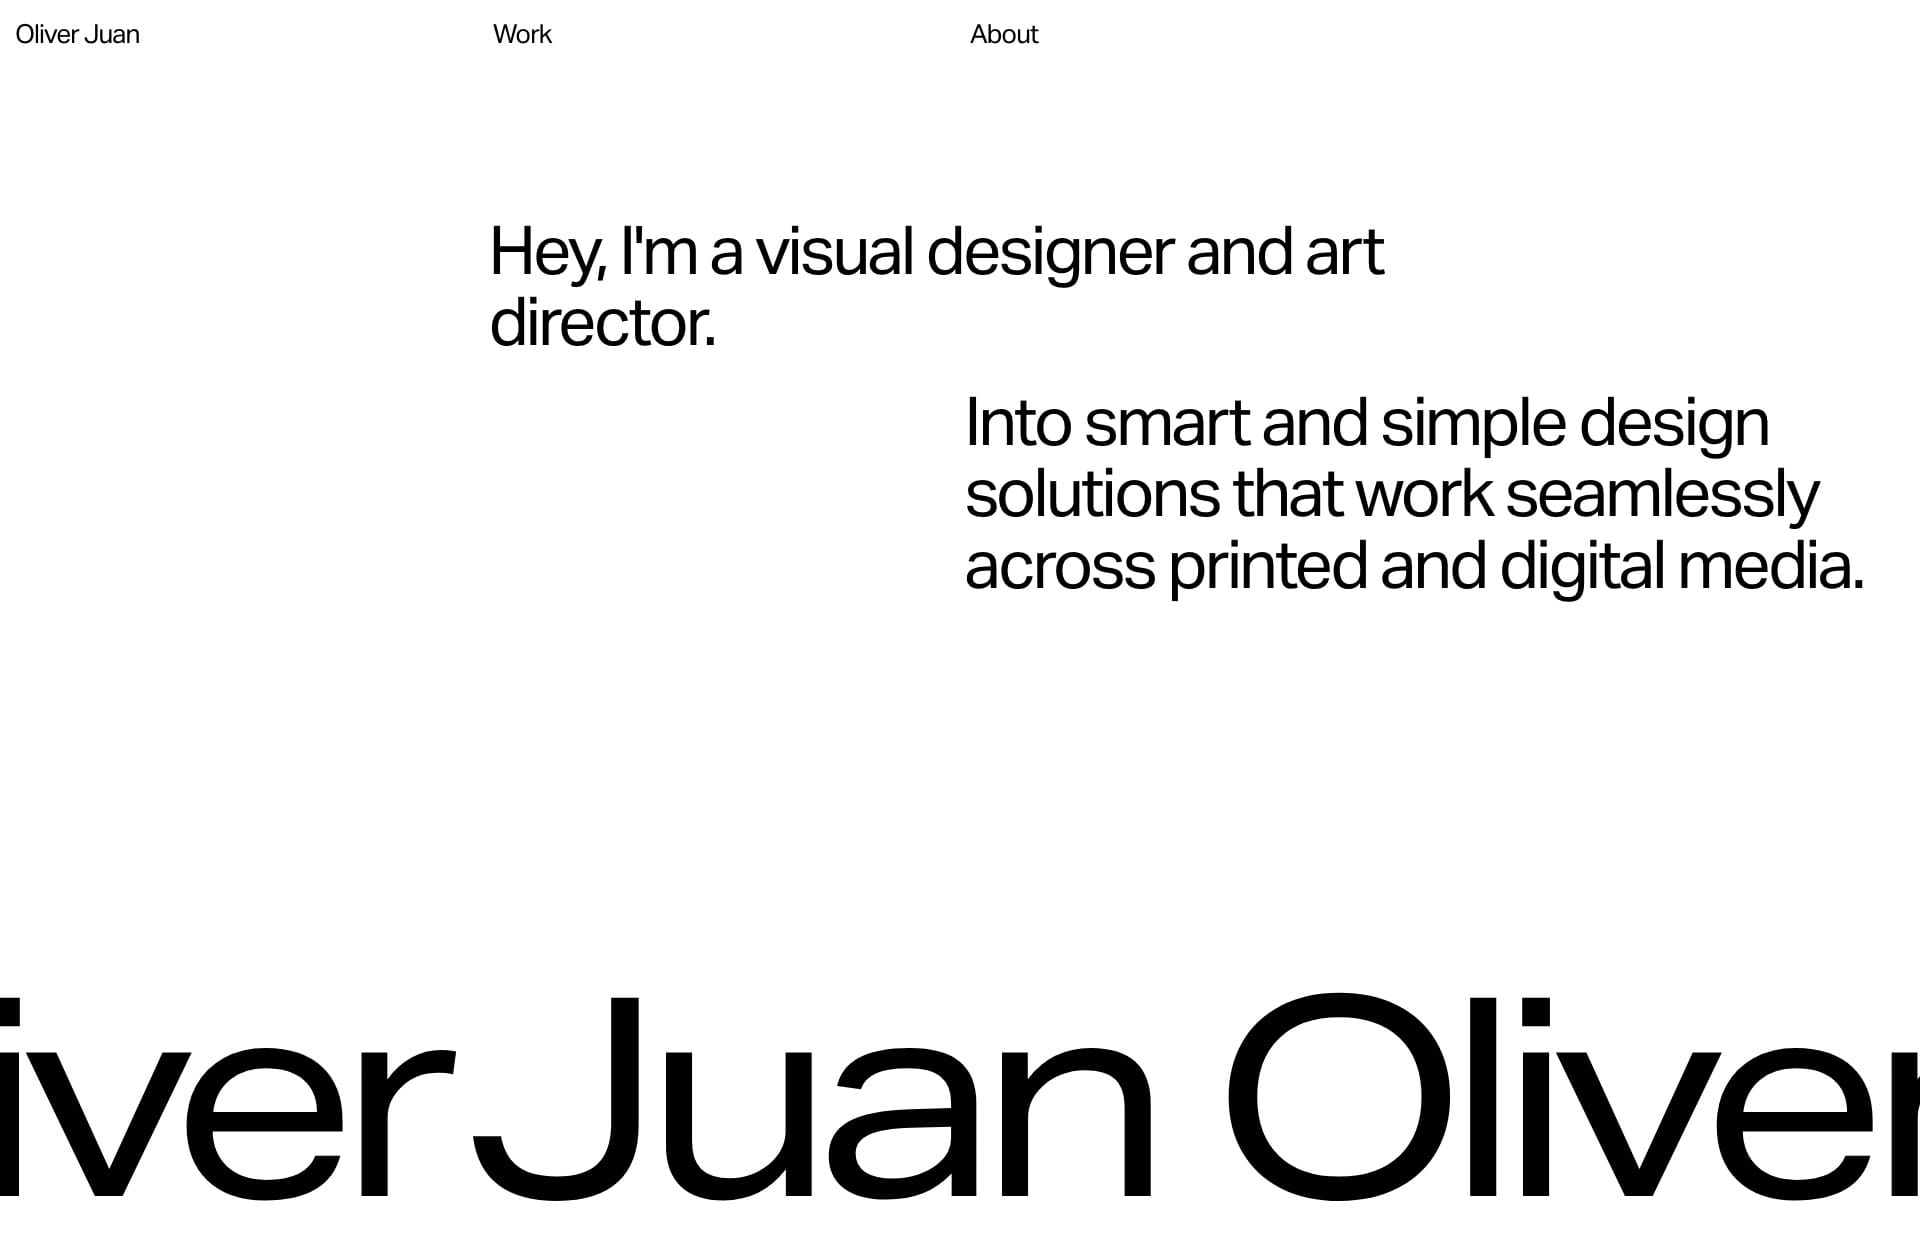 Screenshot of the website Oliver Juan, featured on The Gallery, a curated collection of minimal websites